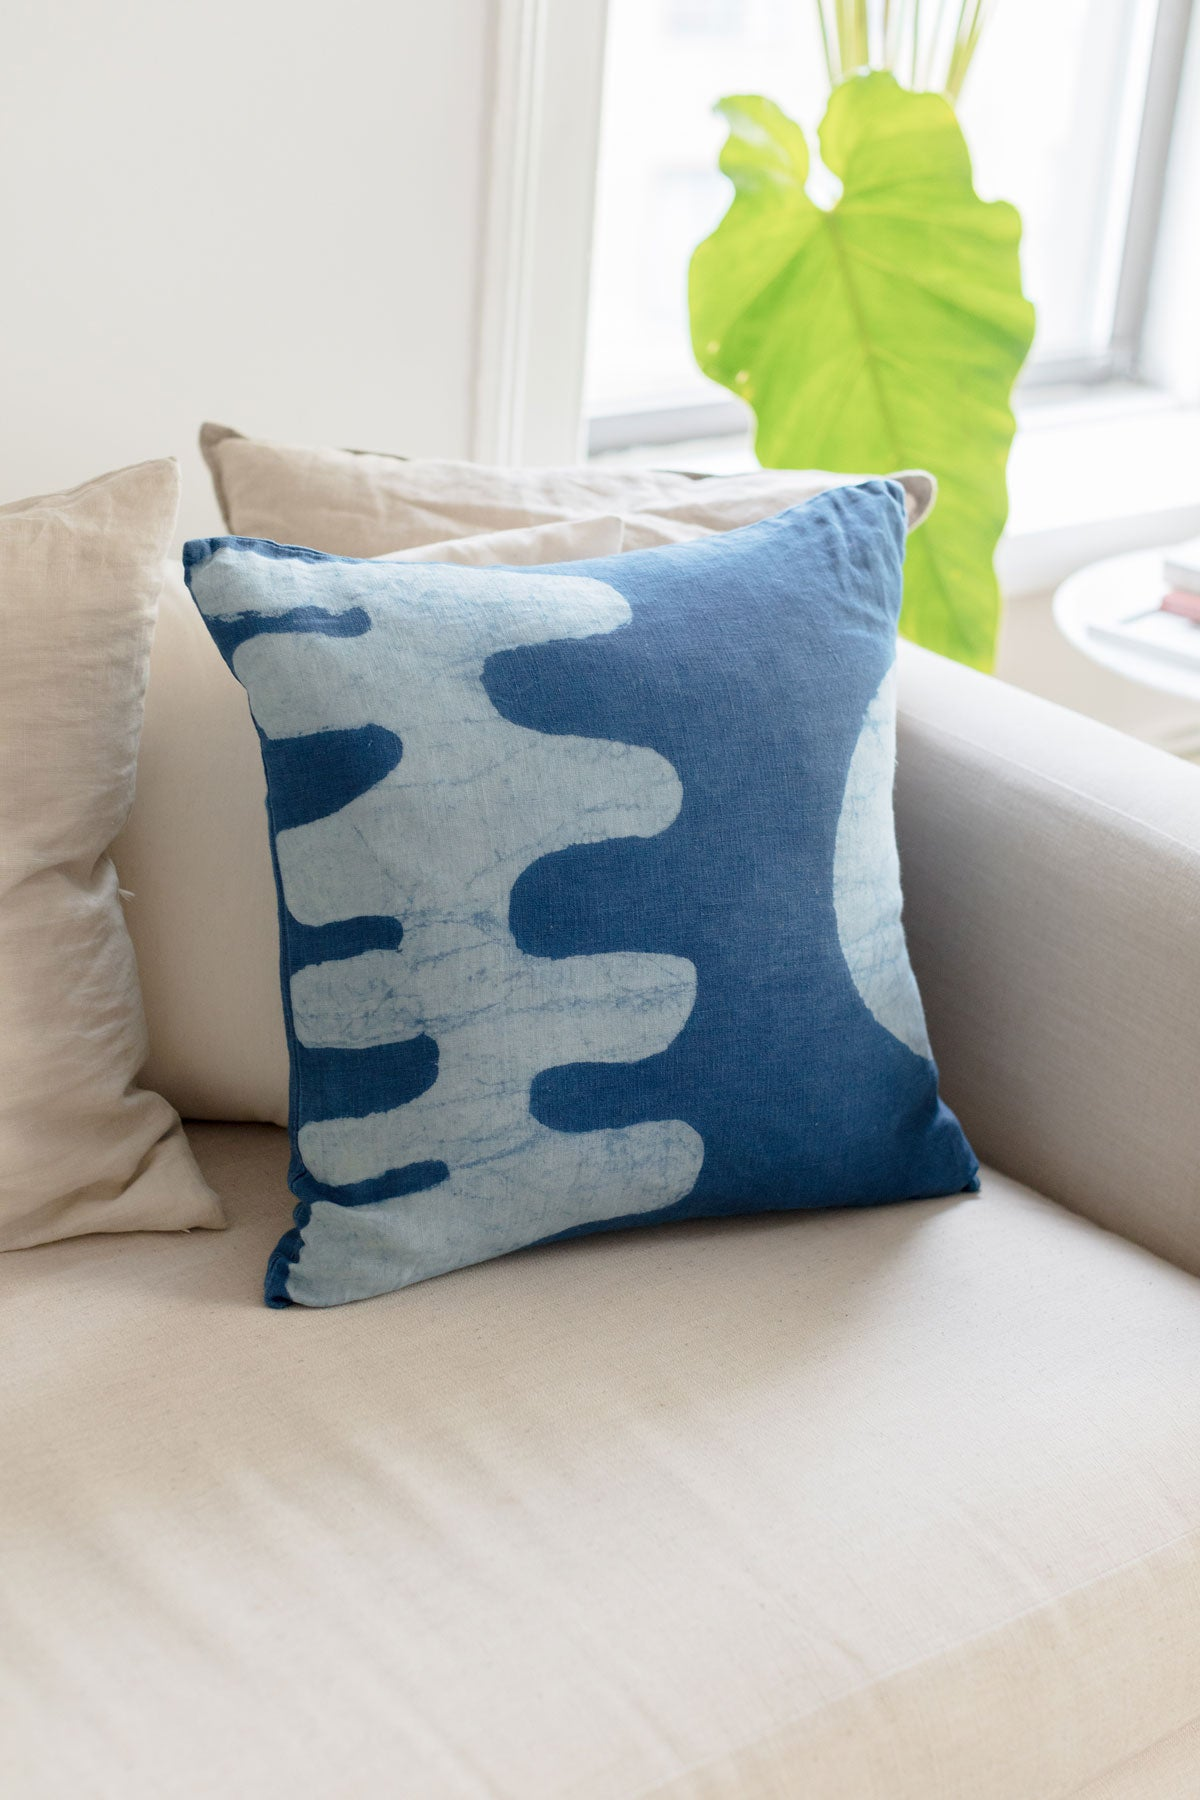 Blue Matisse inspired pillow by SUNDAY/MONDAY. Hand block printed and hand dyed with natural indigo. Featuring bold graphic cut out shapes.